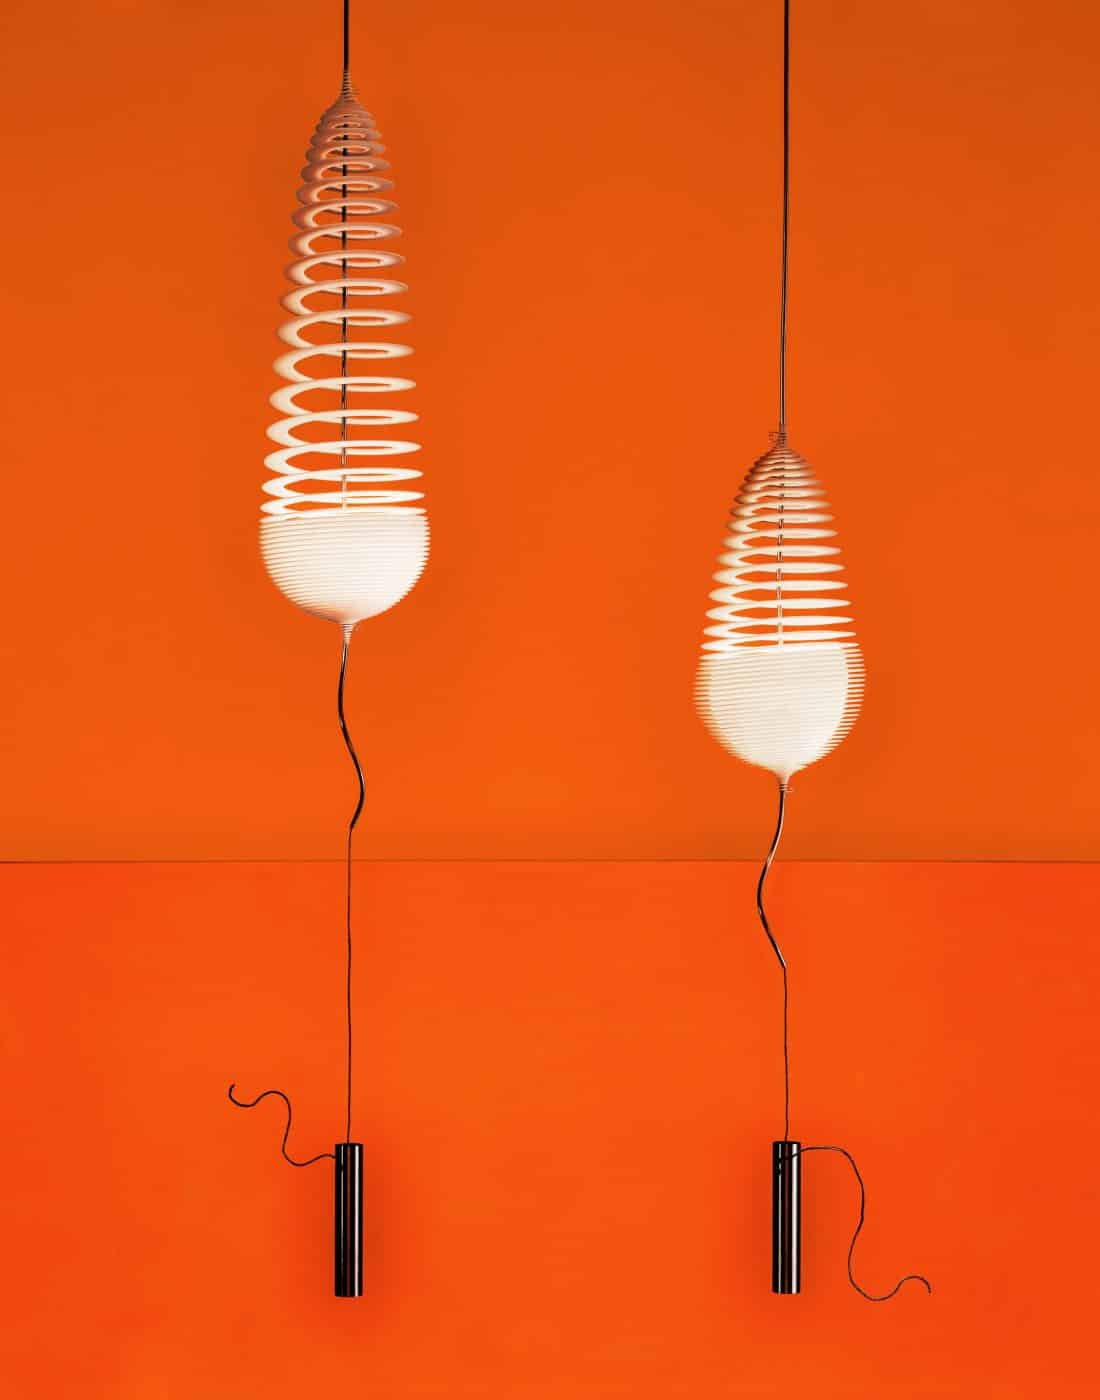 """Ron Arad's 2000 Ge-Off Sphere hanging light, from """"Electrifying Design: A Century of Lighting,"""" at the Museum of Fine Arts, Houston"""